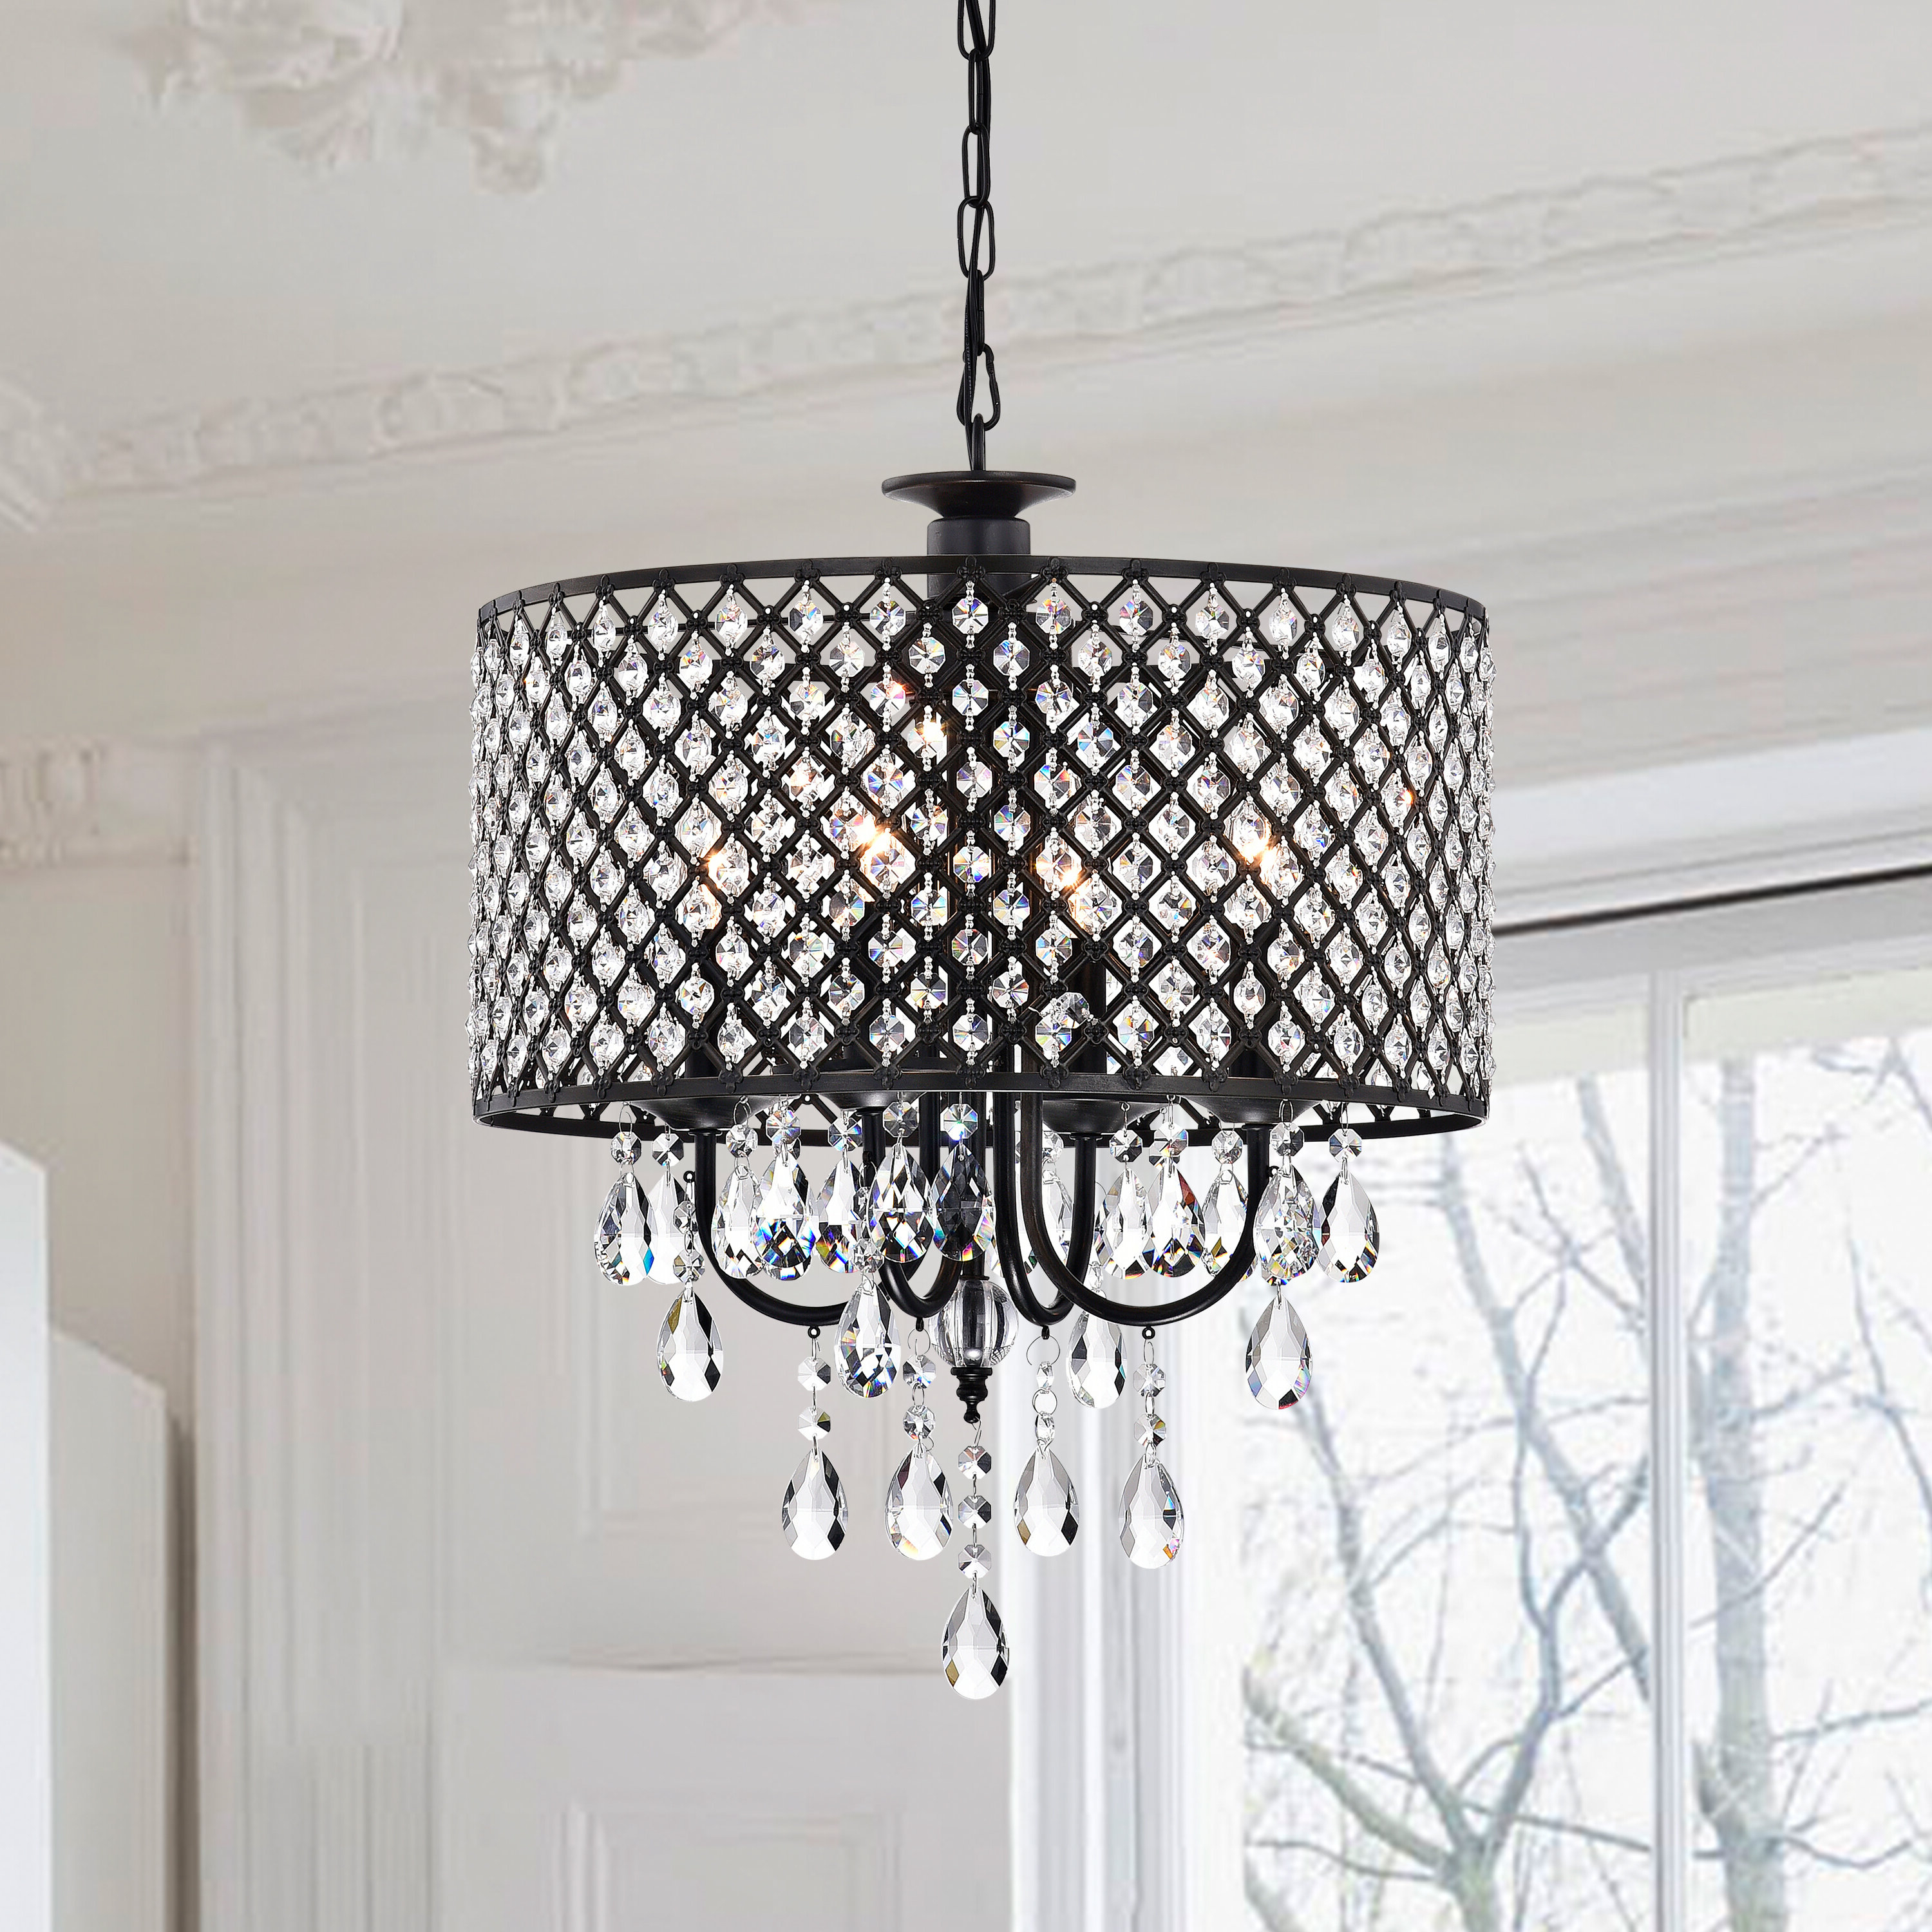 Sinead 4 Light Chandeliers Throughout Fashionable Gisselle 4 Light Drum Chandelier (View 3 of 20)